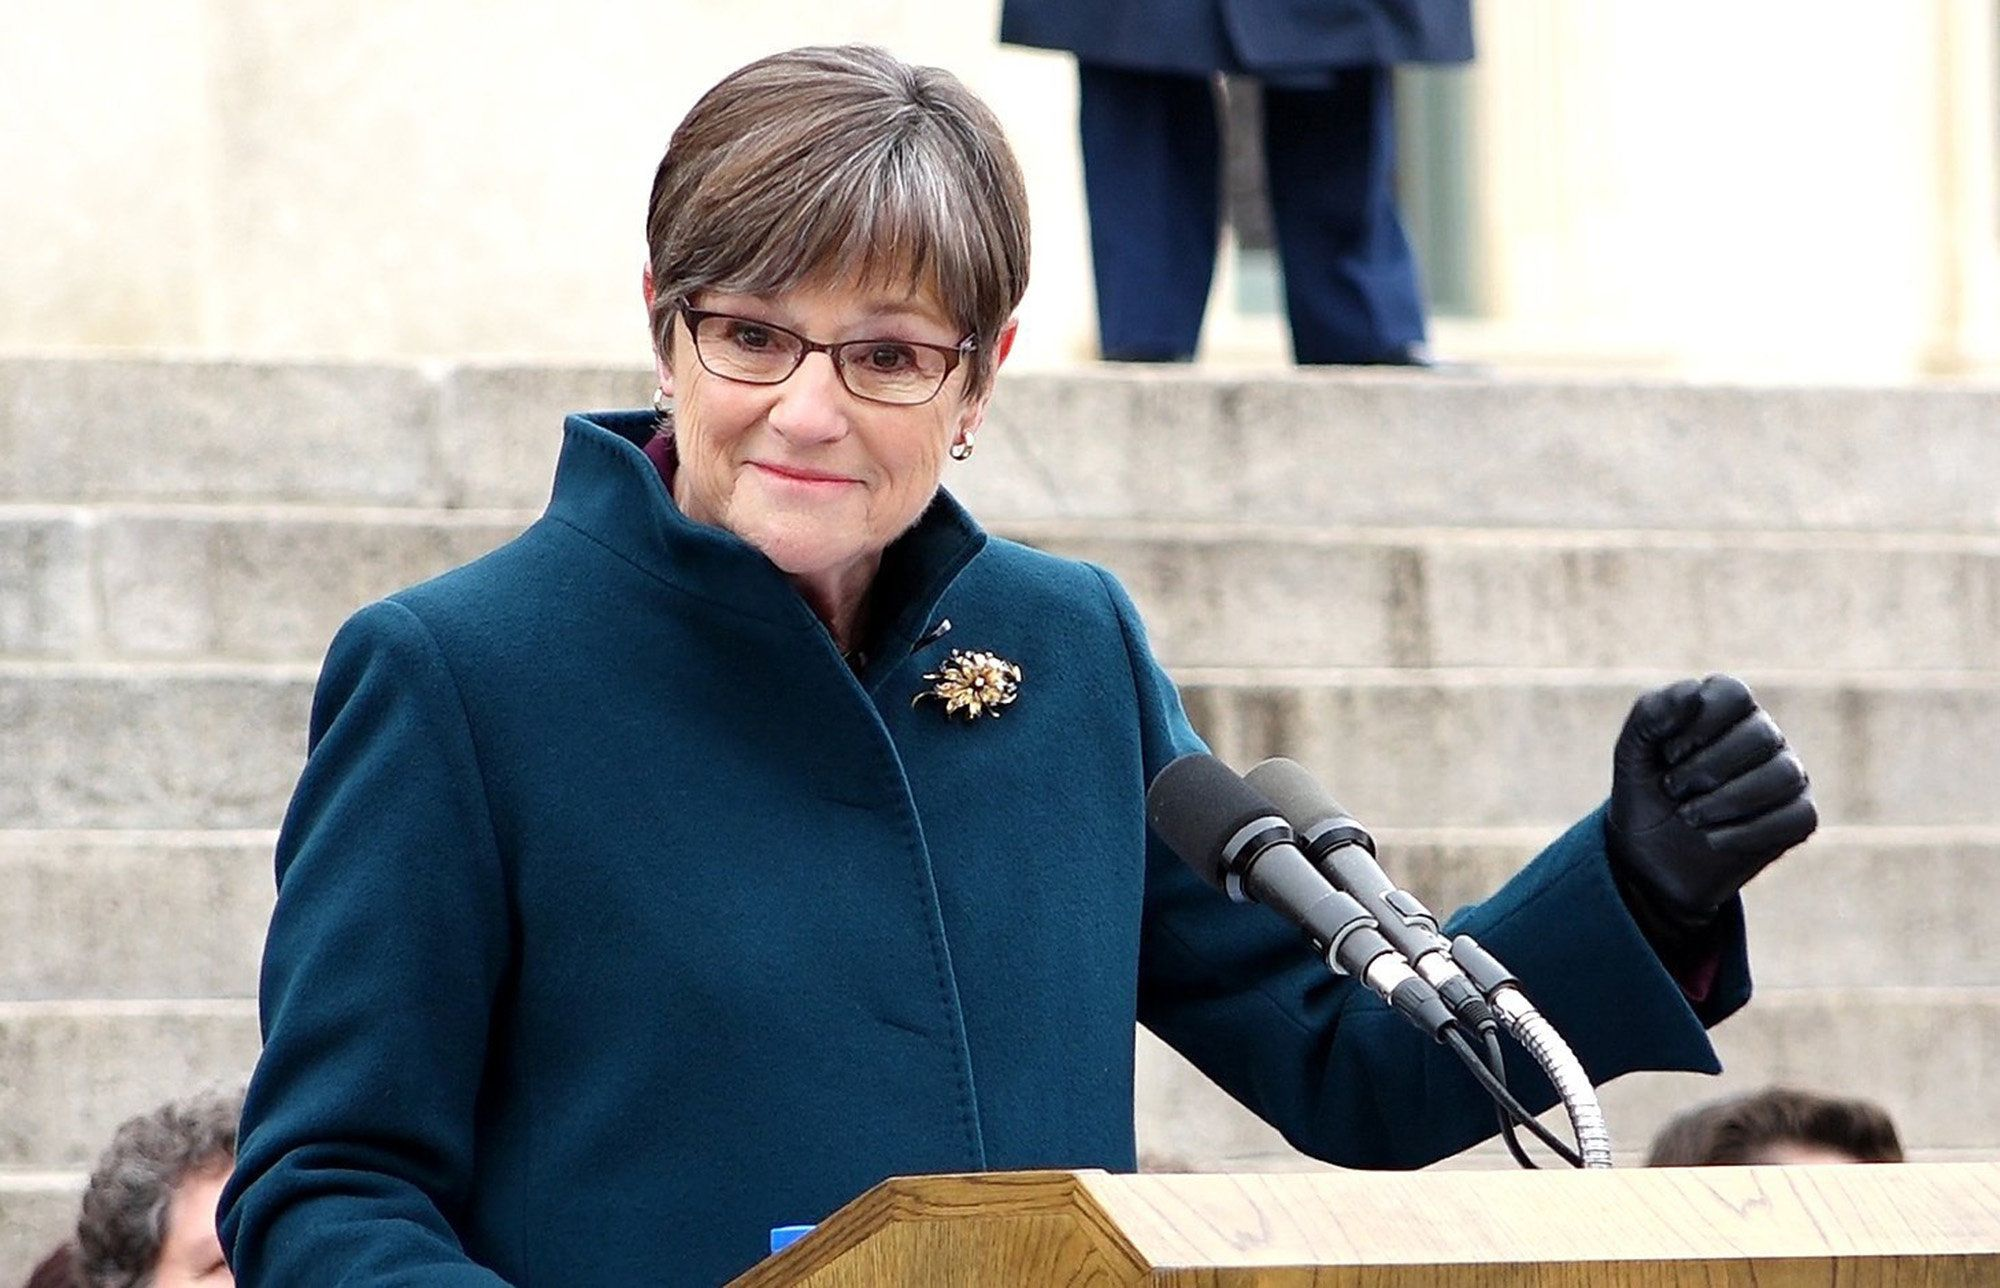 Laura Kelly speaks after being sworn in as the 48th governor of Kansas in an inauguration ceremony in front of the statehouse Monday, Jan. 14, 2019 in Topeka, Kan. (Jill Toyoshiba/The Kansas City Star/TNS via Getty Images)